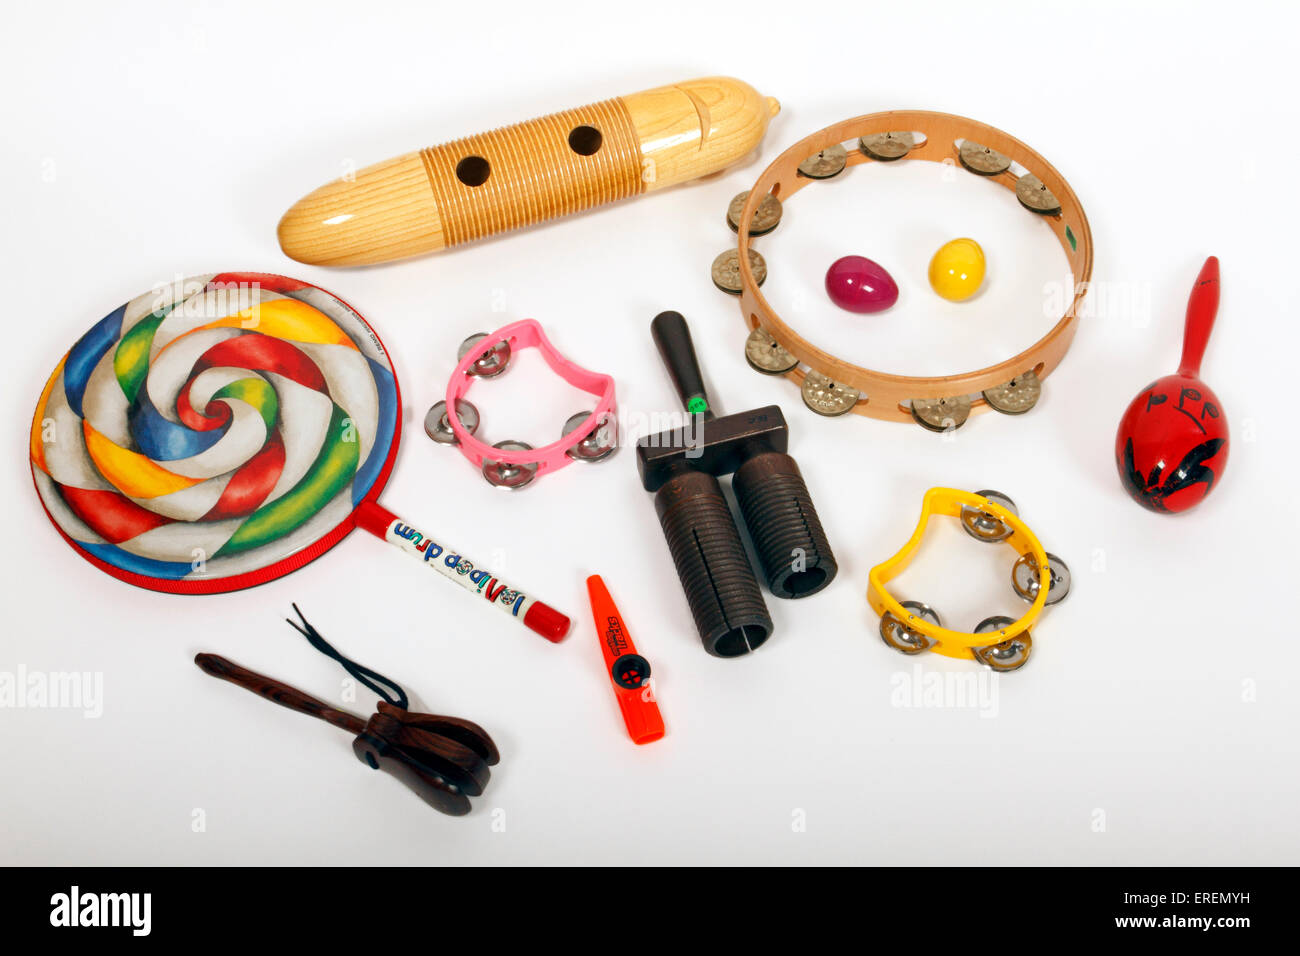 Collection of school percussion instruments for school